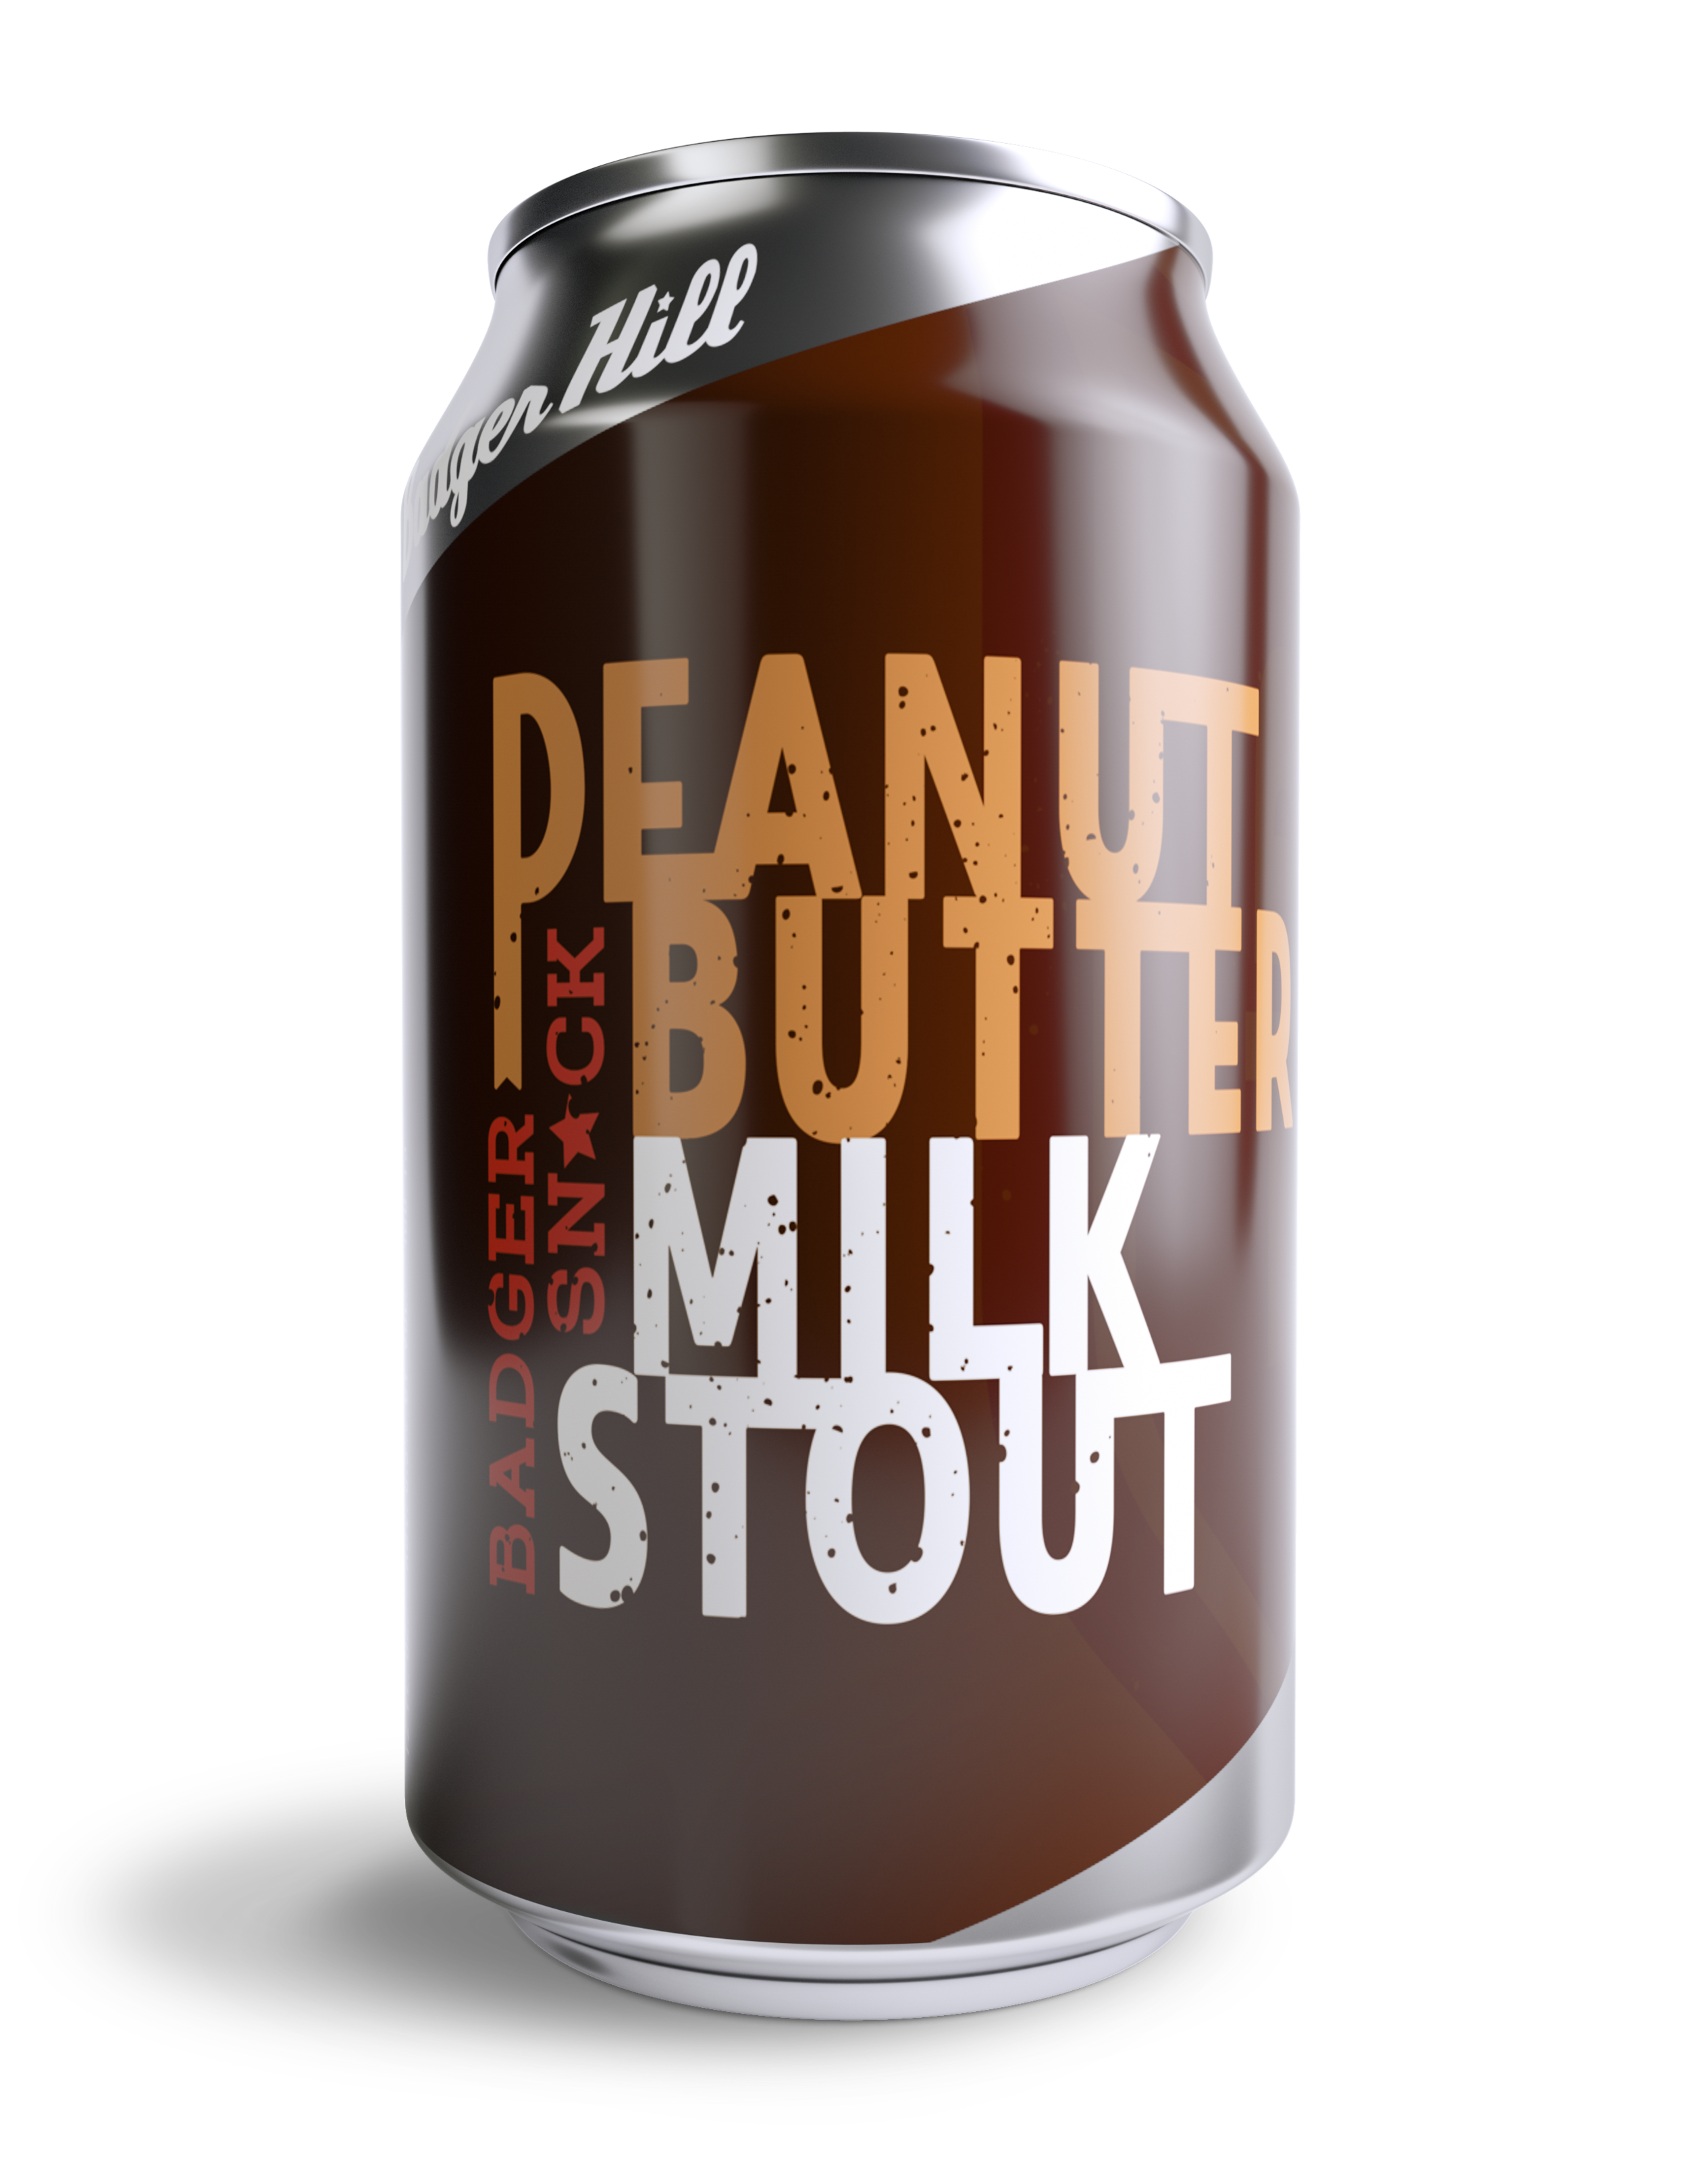 Badger snack peanut butter stout - 6.3% ABV * 13 IBUA blend of roasted malts, flaked oats, flaked barley and milk sugar make for creamy chocolaty base to this peanut butter powered snack. A treat for badgers and beer drinkers alike.AVAILABLE: Draft and 6-Packs